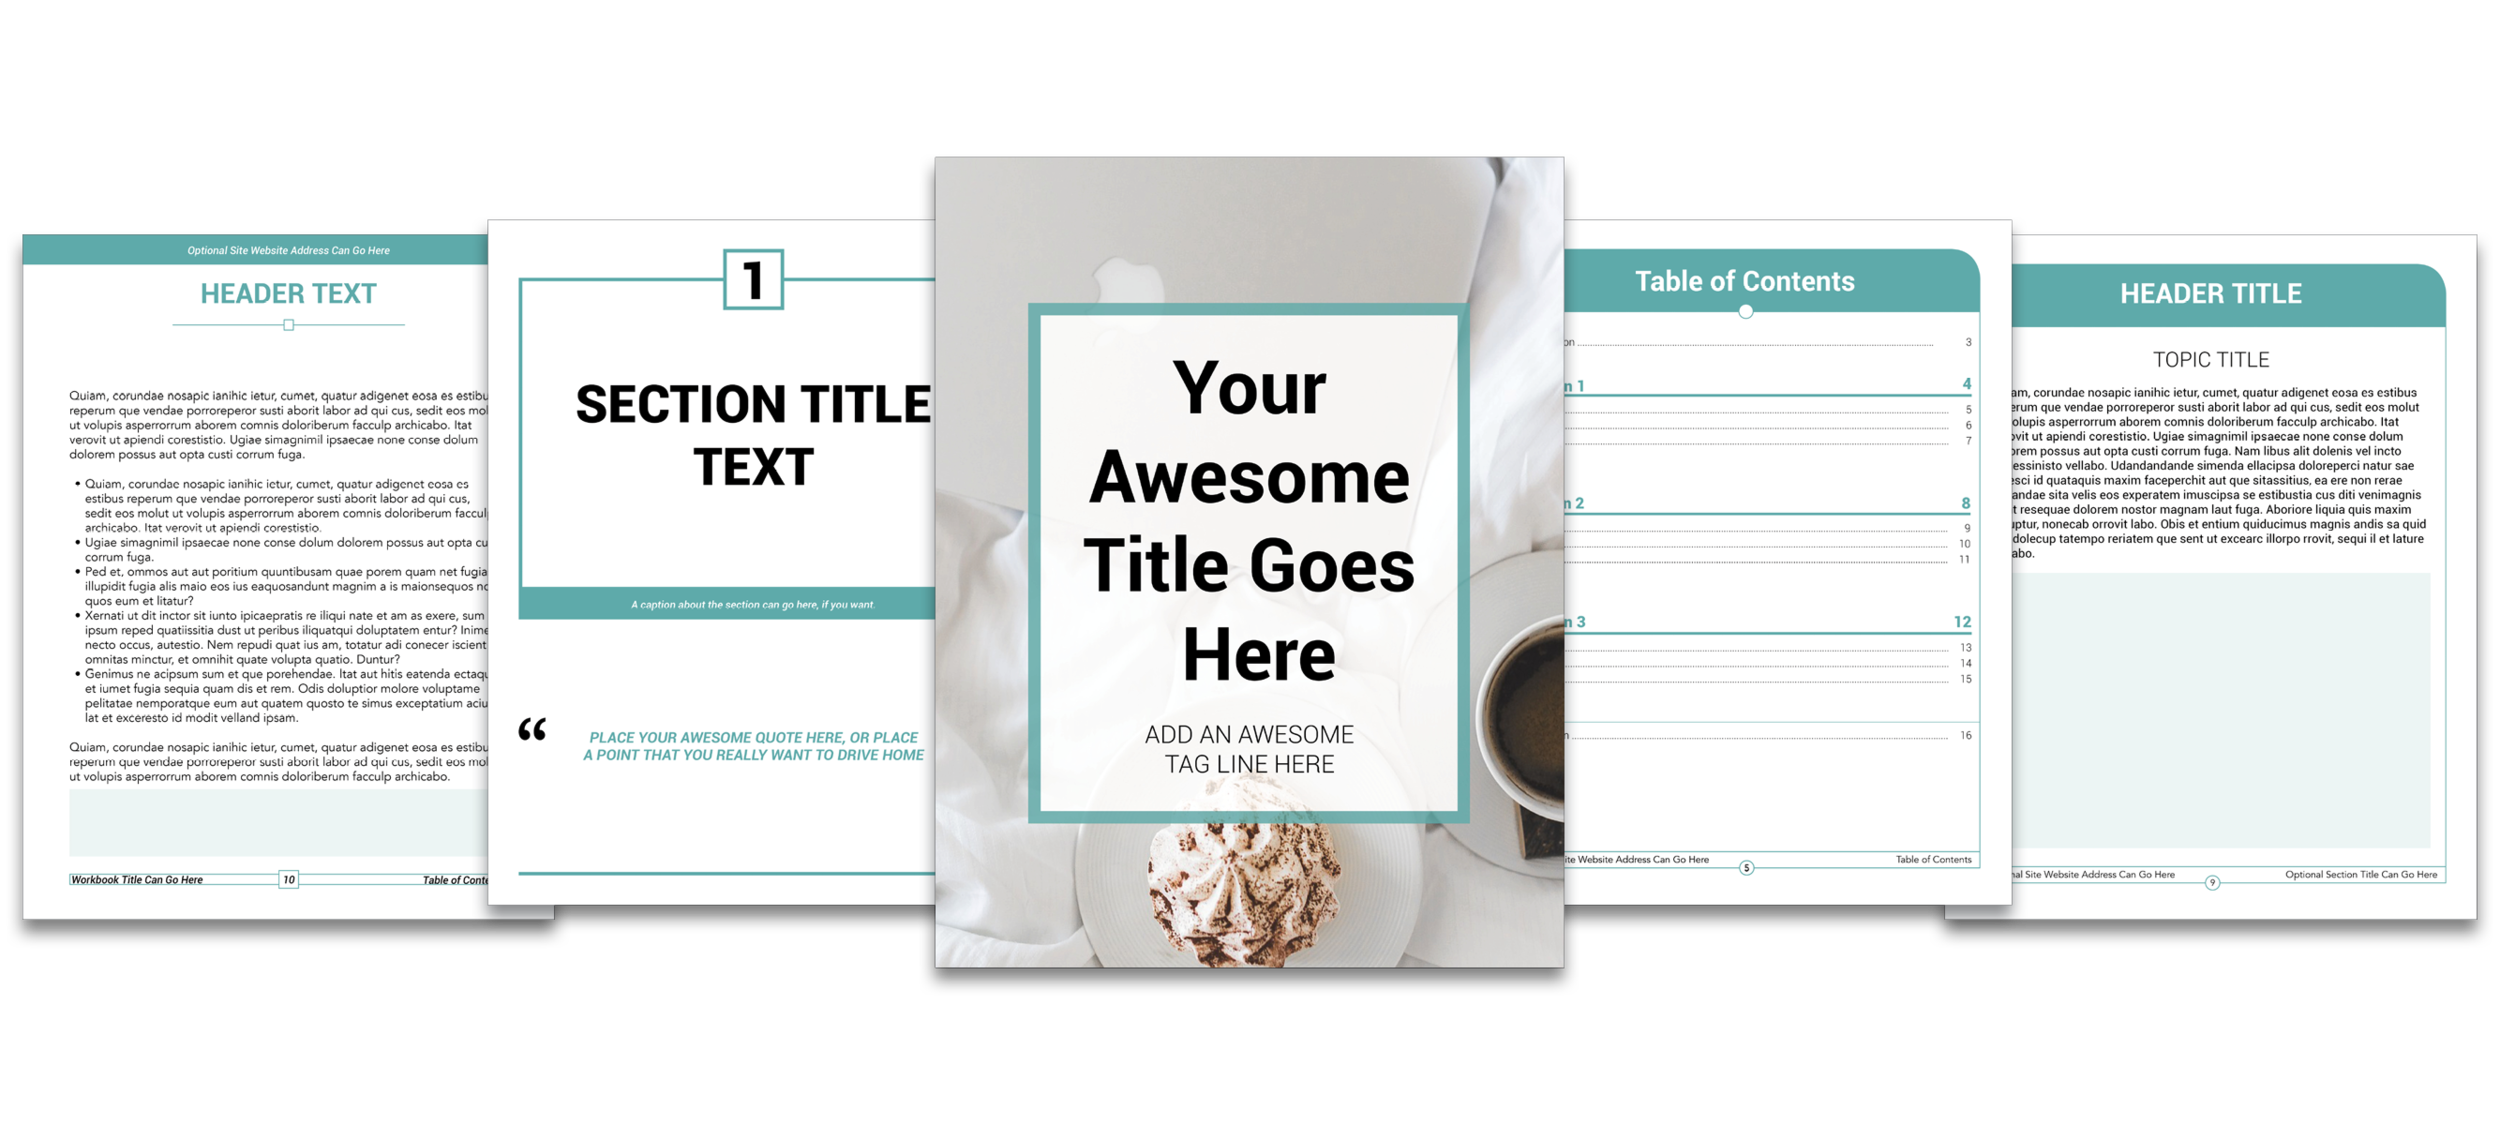 InDesign Templates for checklists, workbooks, cover pages, mockups, and more. Click the image to learn more.